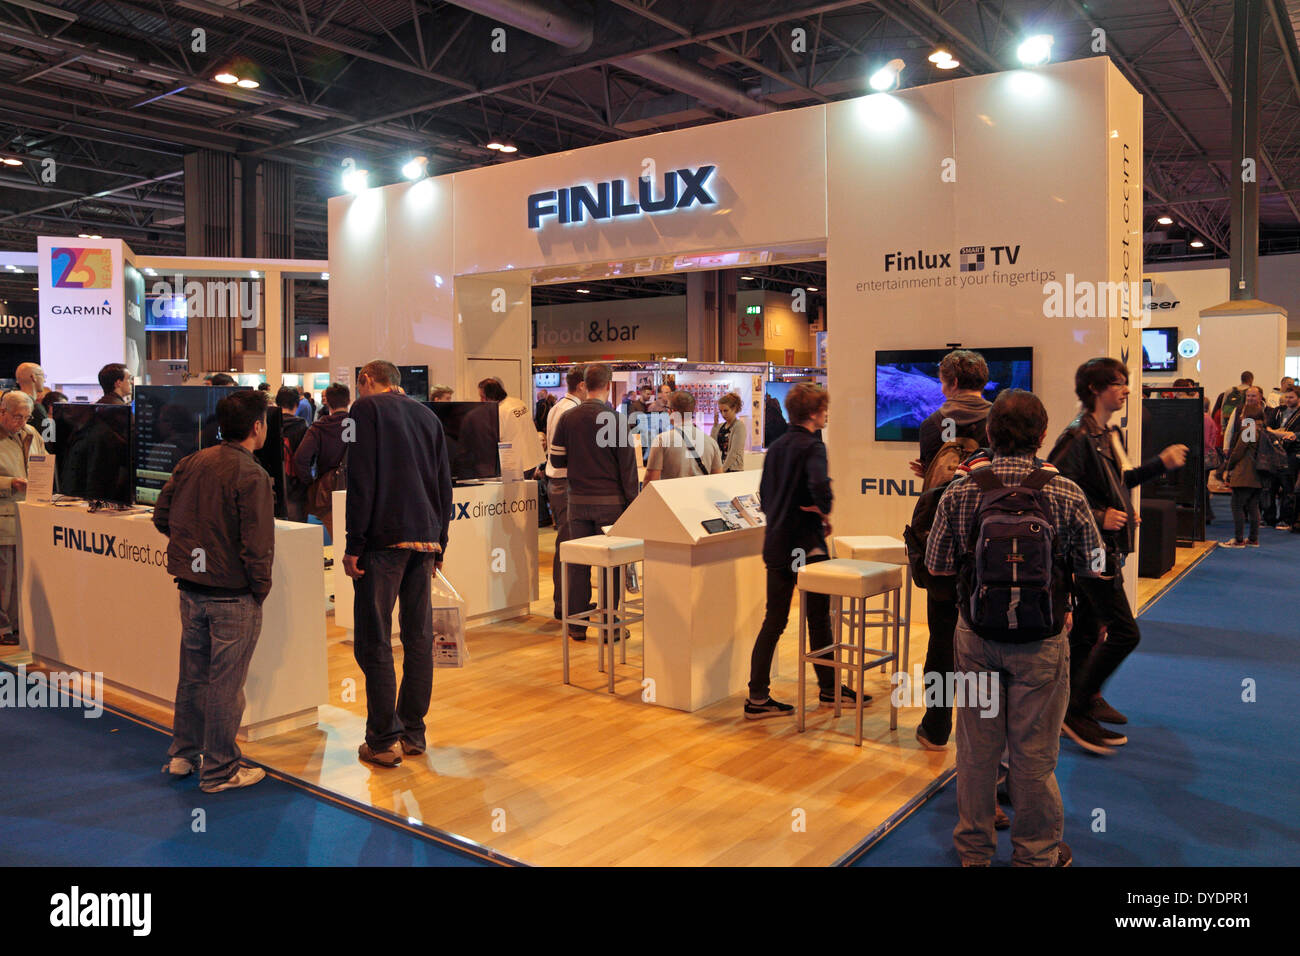 The FINLUX display at the Gadget Show Live 2014 show at the NEC, near Birmingham, UK. - Stock Image